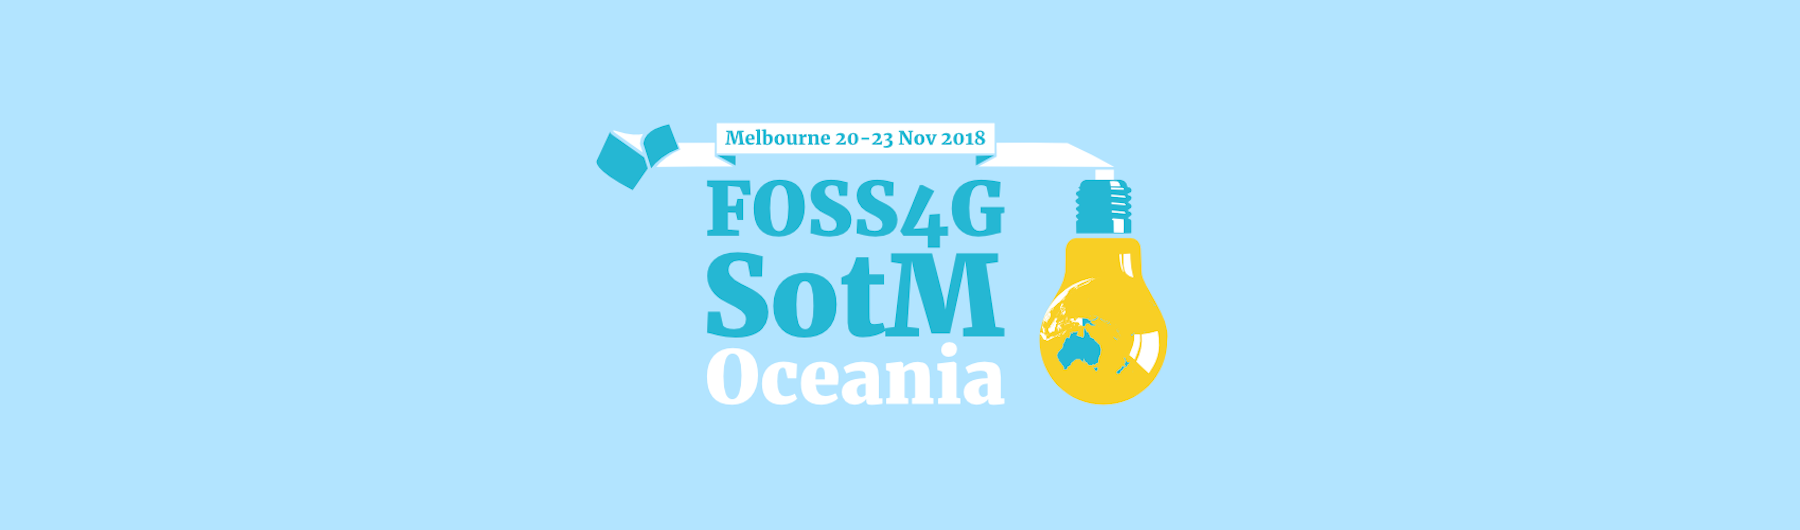 FOSS4G SotM Oceania 2018 - Conference